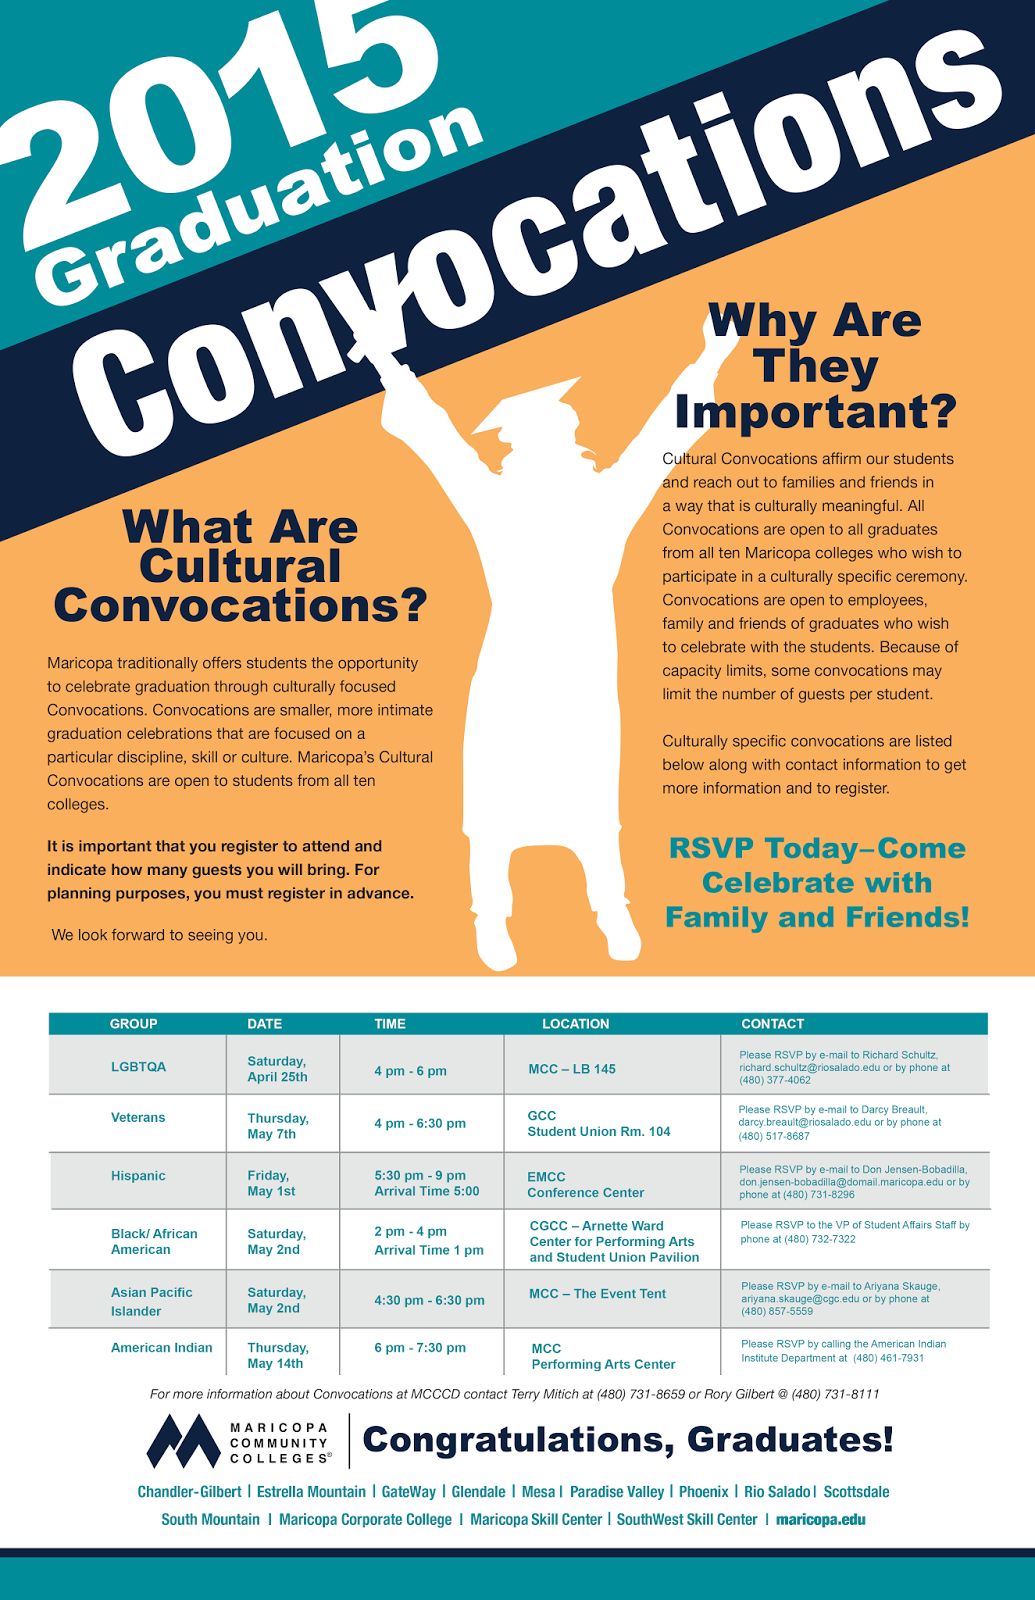 What are cultural convocations? Maricopa traditionally offers students the opportunity to celebrate graduation through culturally focused Convocations. Convocations are smaller, more intimate graduation celebrations that are focused on a particular discipline, skill or culture. Maricopa's Cultural Convocations are open to students from all ten colleges. It is important that you register to attend and indicate how many guests you will bring. For planning purposes, you must register in advance. We look forward to seeing you.Why are they important? Cultural Convocations affirm our students and reach out to families and friends in a way that is culturally meaningful. All Convocations are open to all graduates from all ten Maricopa colleges who wish to participate in a culturally specific ceremony. Convocations are open to employees, family and friends of graduates who wish to celebrate with the students. Because of the capacity limits, some convocations may limit the number of guests per student. Culturally specific convocations are listed below along with contact information to get more information and to register. RSVP today, come celebrate with family and friends! Group LGBTQA. Date: Saturday, April 25th. Time: 4 p.m. – 6 p.m. Location: MCC –LB 145. Contact: Please RSVP by e-mail to Richard Schultz, Richard.schultz@riosalado.edu or by phone at 480-377-4062. Group Veterans. Date: Thursday, May 7th. Time 4 p.m. – 6:30 p.m.. Location: GCC Student Union Rom. 104. Contact: Please RSVP by e-mail to Darcy Breault, darcy.breault@riosalado.edu or by phone at 480-517-8687. Group Hispanic. Date: Friday, May 1st. Time: 5:30 p.m. – 9 p.m.. Arrival time is 5:00 p.m.. Location: EMCC Conference Center. Location: Please RSVP by e-mail to Don Jensen-Bobailla, don.jesnsen-bobadilla@domail.maricopa.edu or by phone at 480.731.8296.Group Black / African American. Date: Saturday, May 2nd. Time: 2p.m. – 4 p.m., arrival time 1 p.m.. Location: CGCC – Arnette Ward Center for Performing Arts and Student Union Pavilion. Contact: Please RSVP to the VP of Student Affairs Staff by phone at 480-732-7322. Group Asian Pacific Islander. Date: Saturday, May 2nd. Time: 4:30 p.m. – 6:30 p.m.. Location: MSS – The Event Tent. Contact: Please RSVP by e-mail to Ariyana Skauge, ariyana.skauge@cgc.edu or by phone at 480-857-5559. Group American Indian. Date: Thursday, May 14th. Time: 6 p.m. – 7:30 p.m.. Location: MCC Performing arts Center. Location: Please RSVP by calling the American Indian Institute Department at 480-461-7931. For more information about Convocations at MCCCD contact Terry Mitich at 480-731-8659 or Rory Gilbert at 480-731-8111.